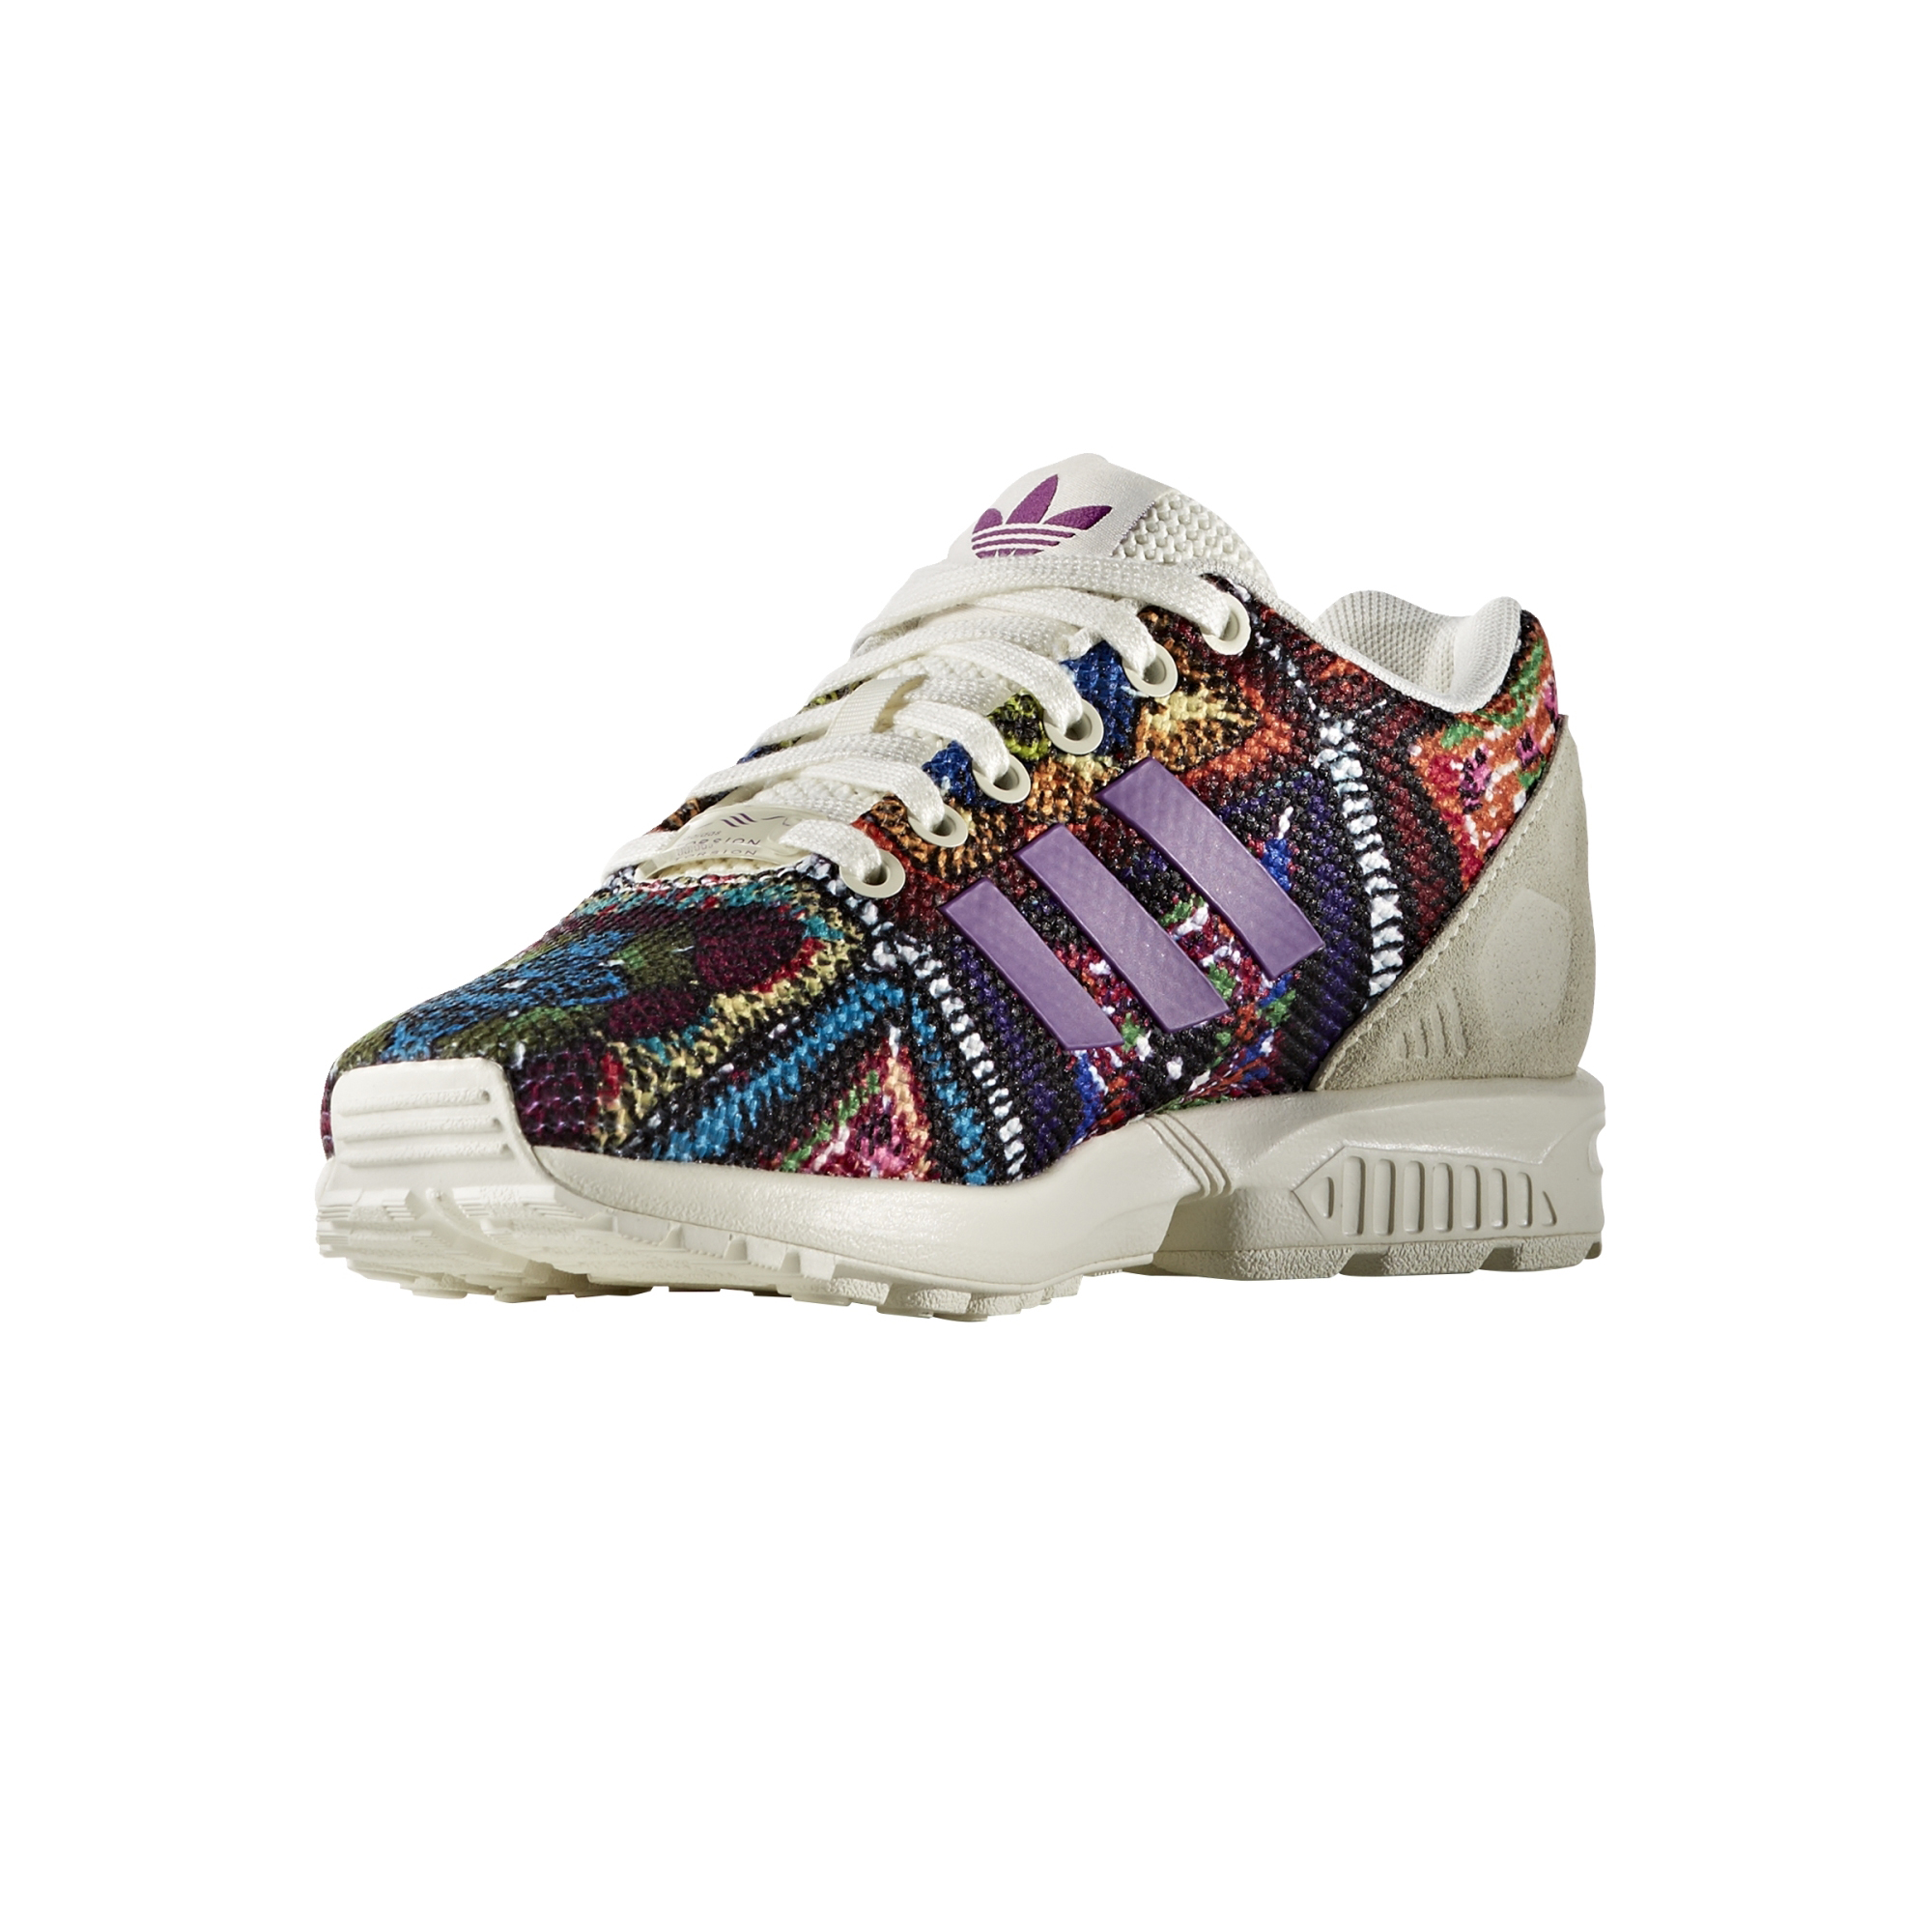 9f98a73821f adidas-originals-zx-flux-w-the-farm-crochita-multicolor-11.jpg